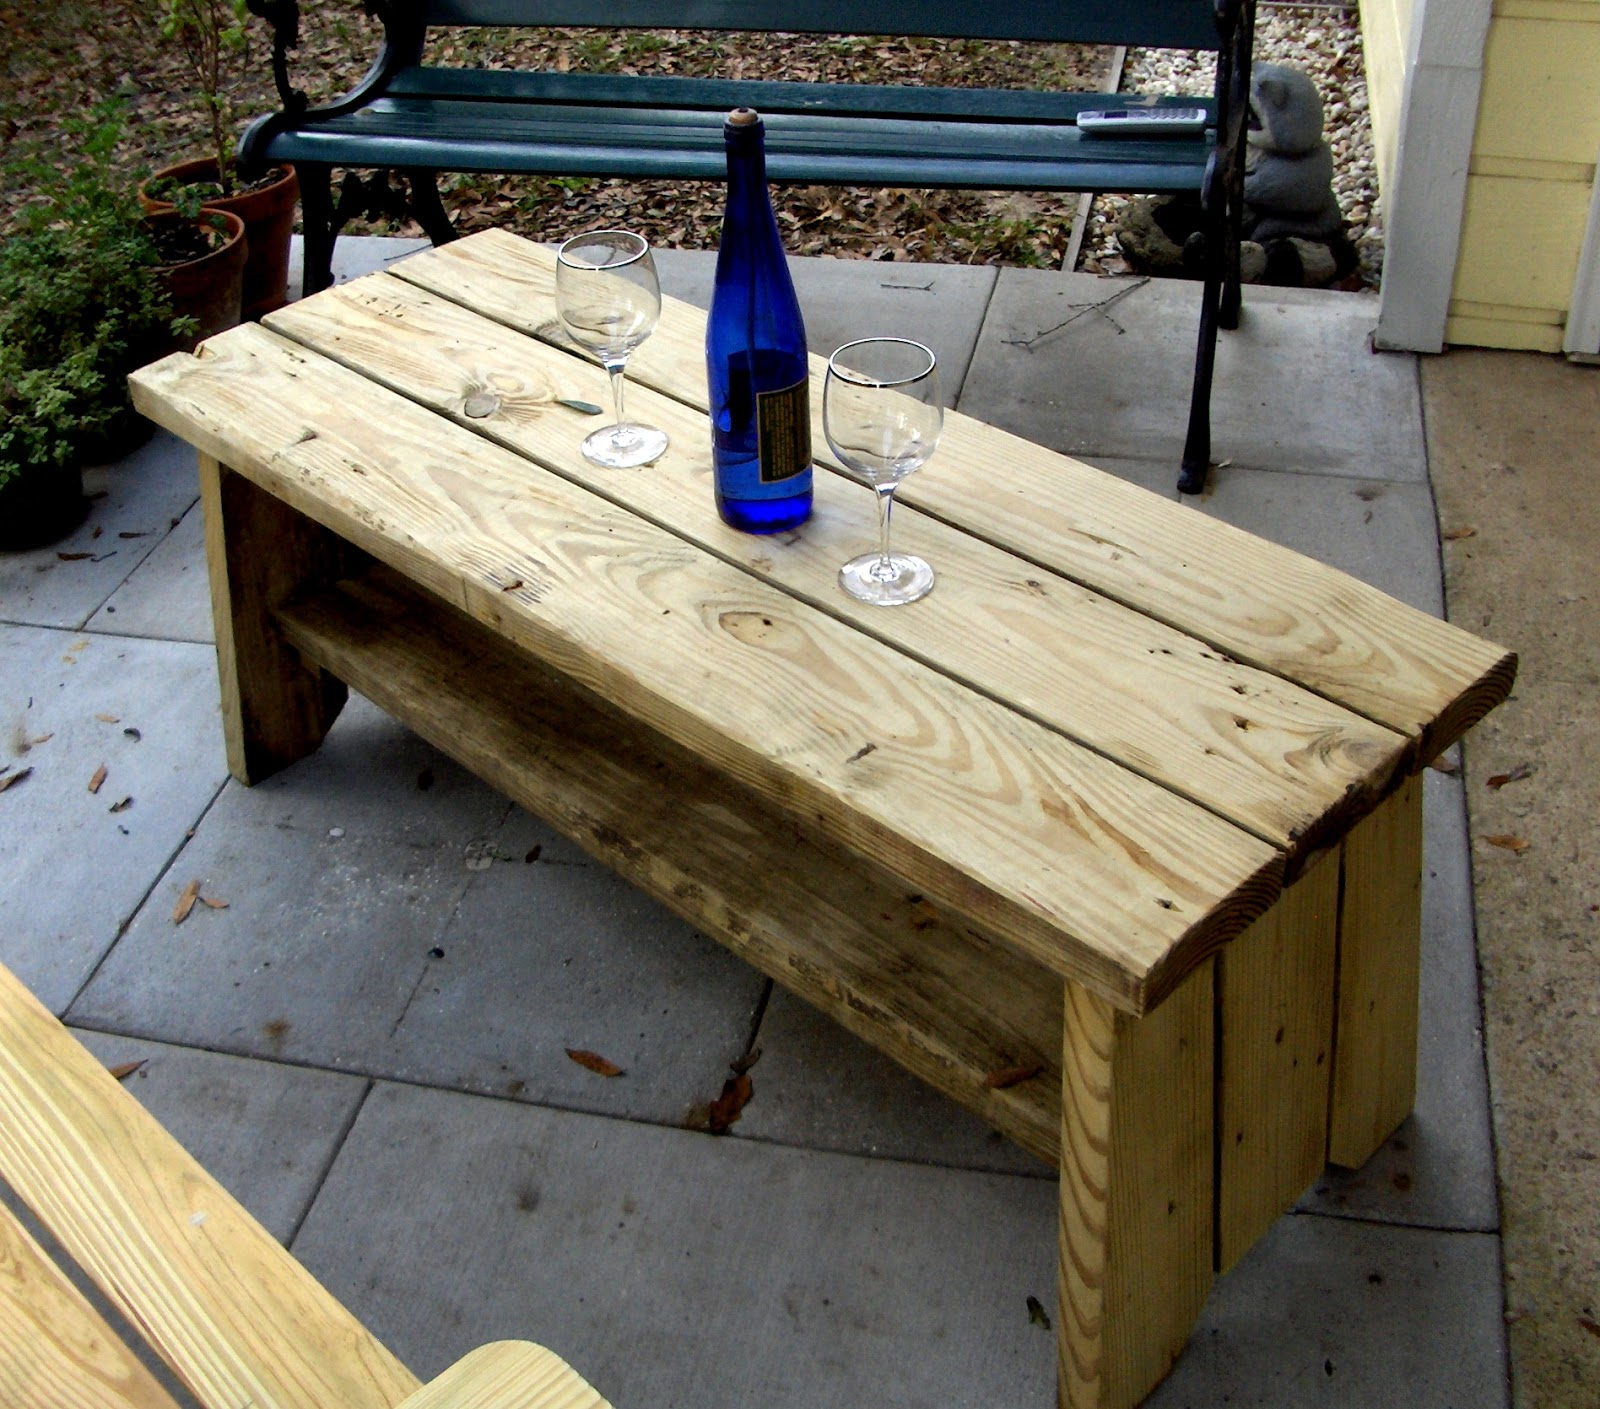 Unique rustic outdoor coffee table sarjaopascom for Unusual outdoor coffee tables